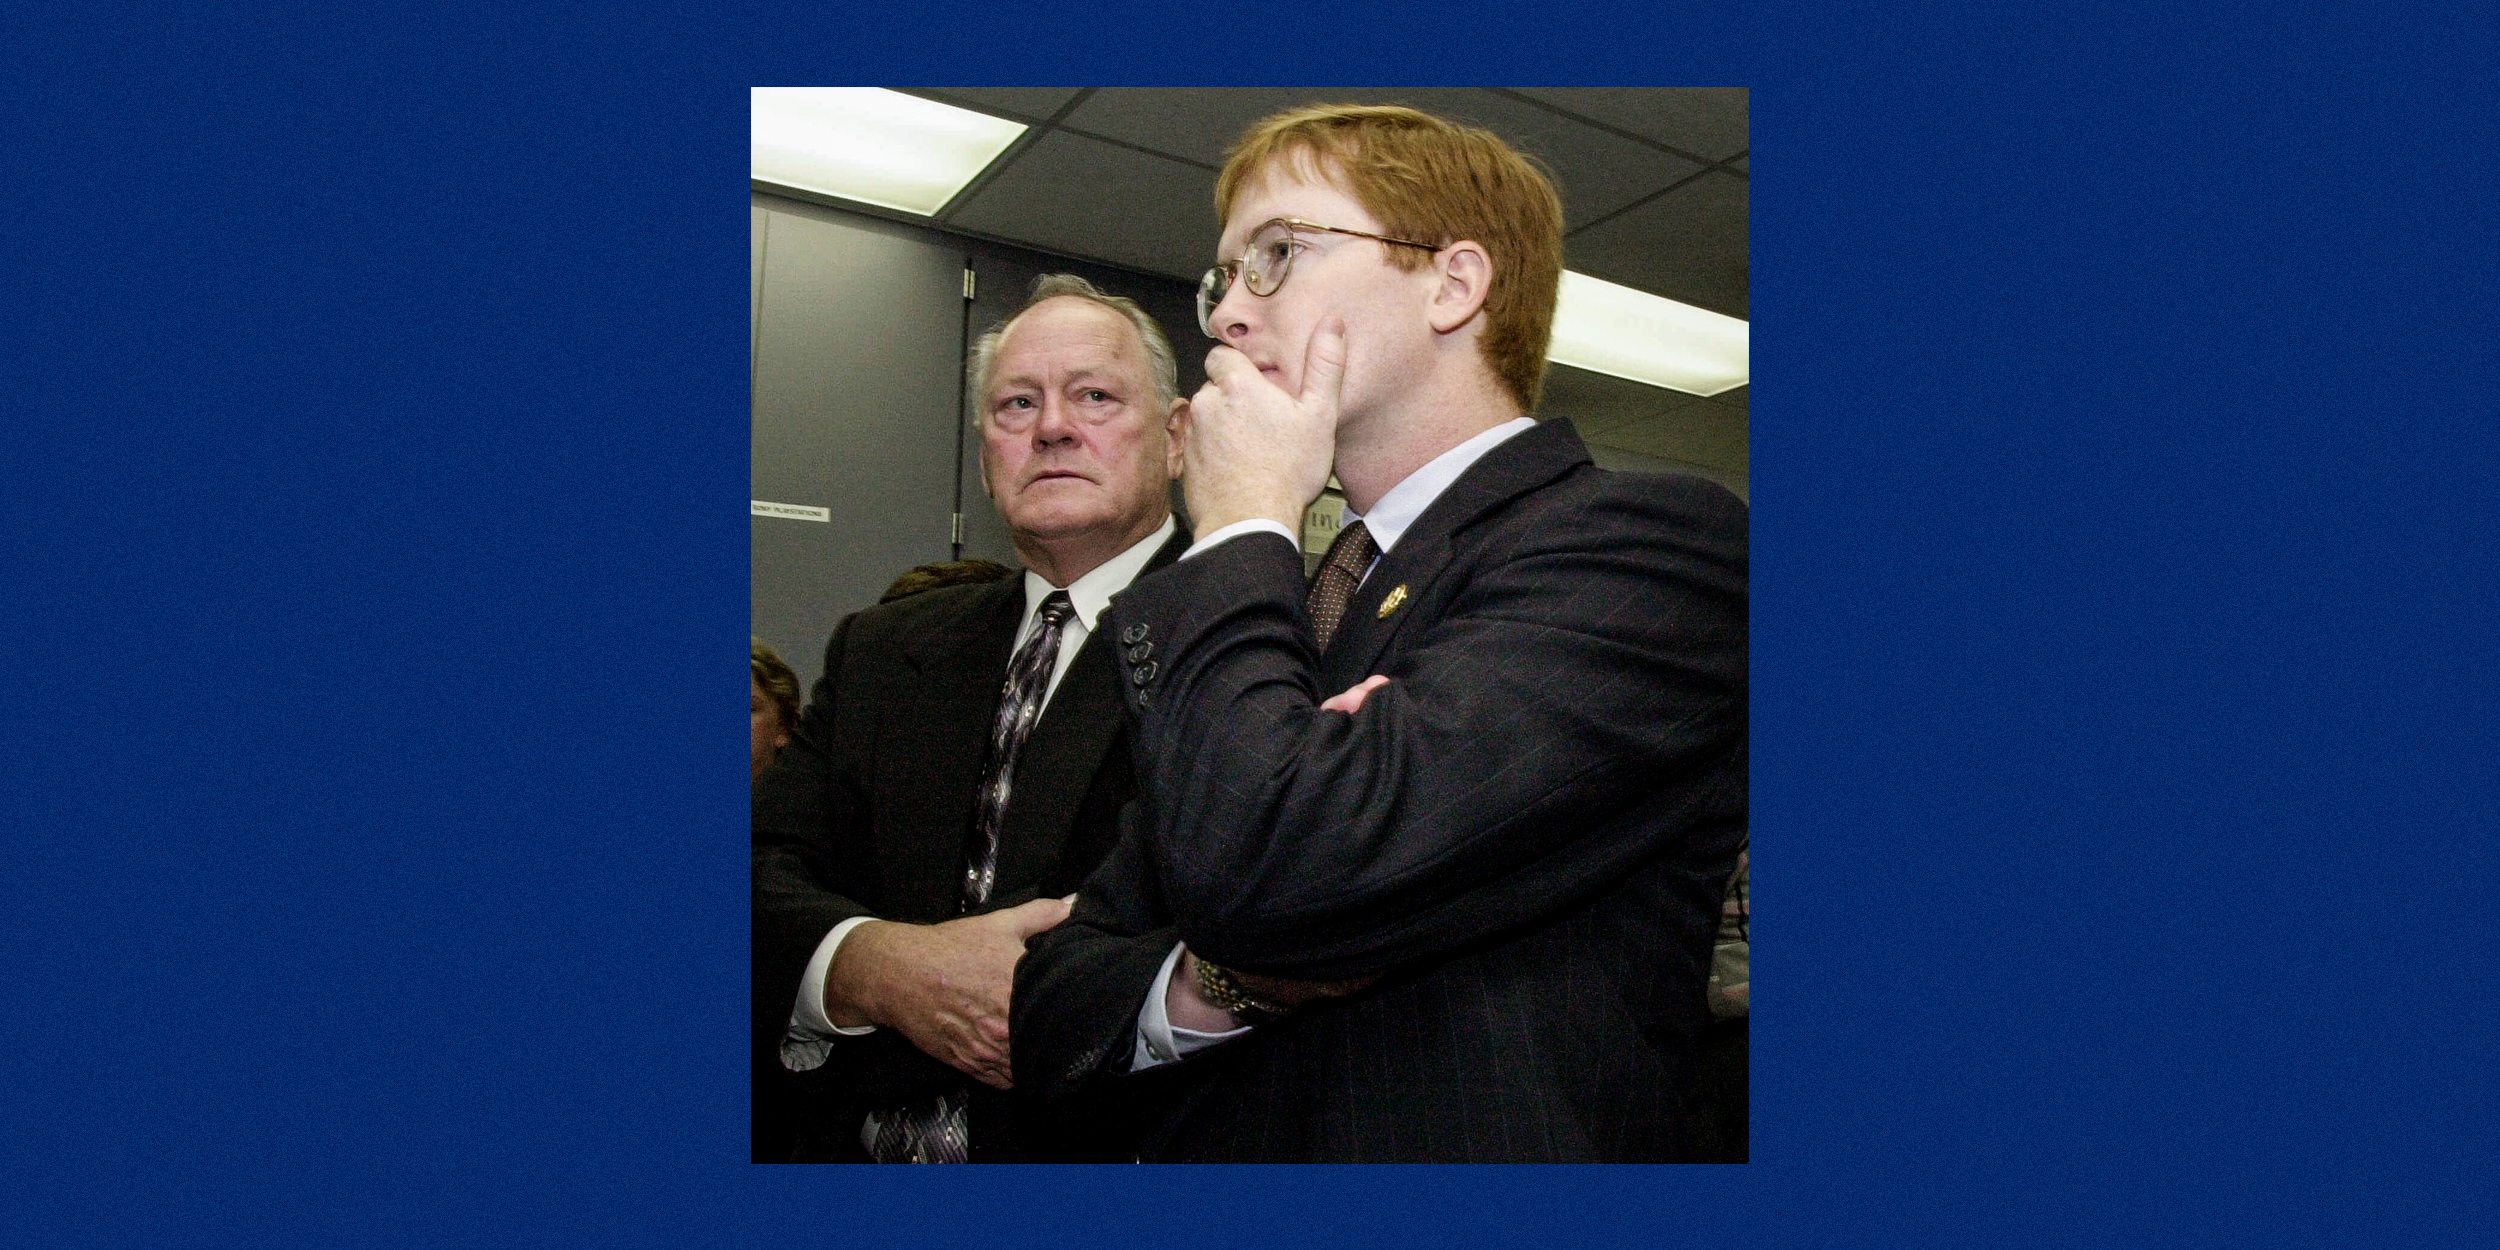 The youngest congressman spent 9/11 with the president